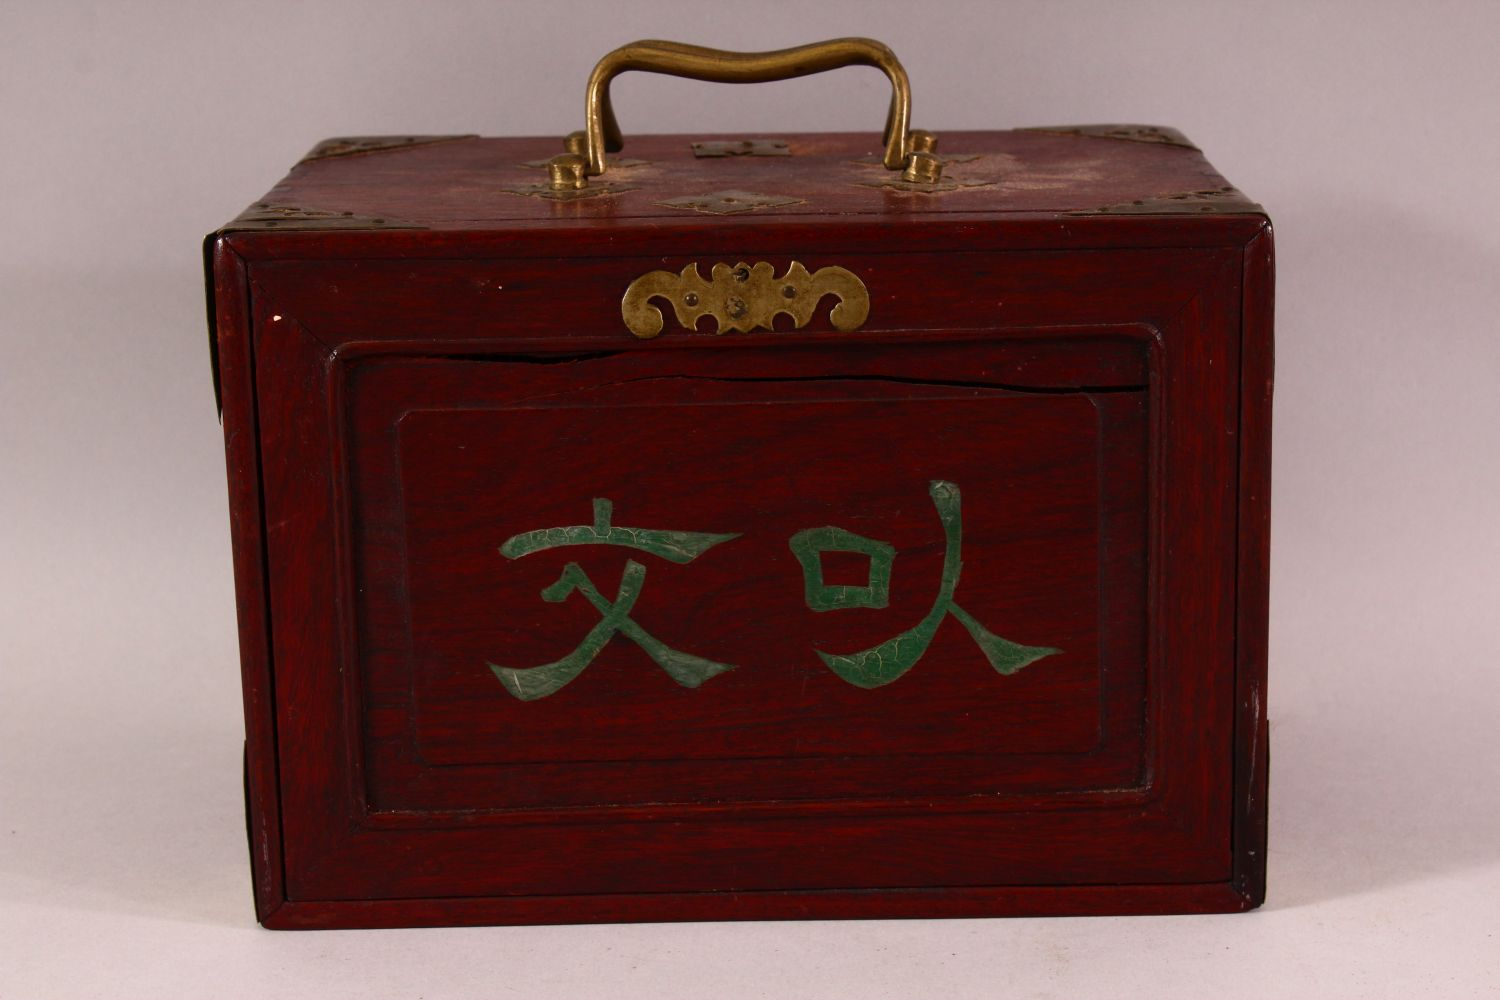 A CHINESE BAMBOO & BONE BOXED MAHJONG SET - comprising 56 drawers full of counters and sticks, - Image 5 of 6